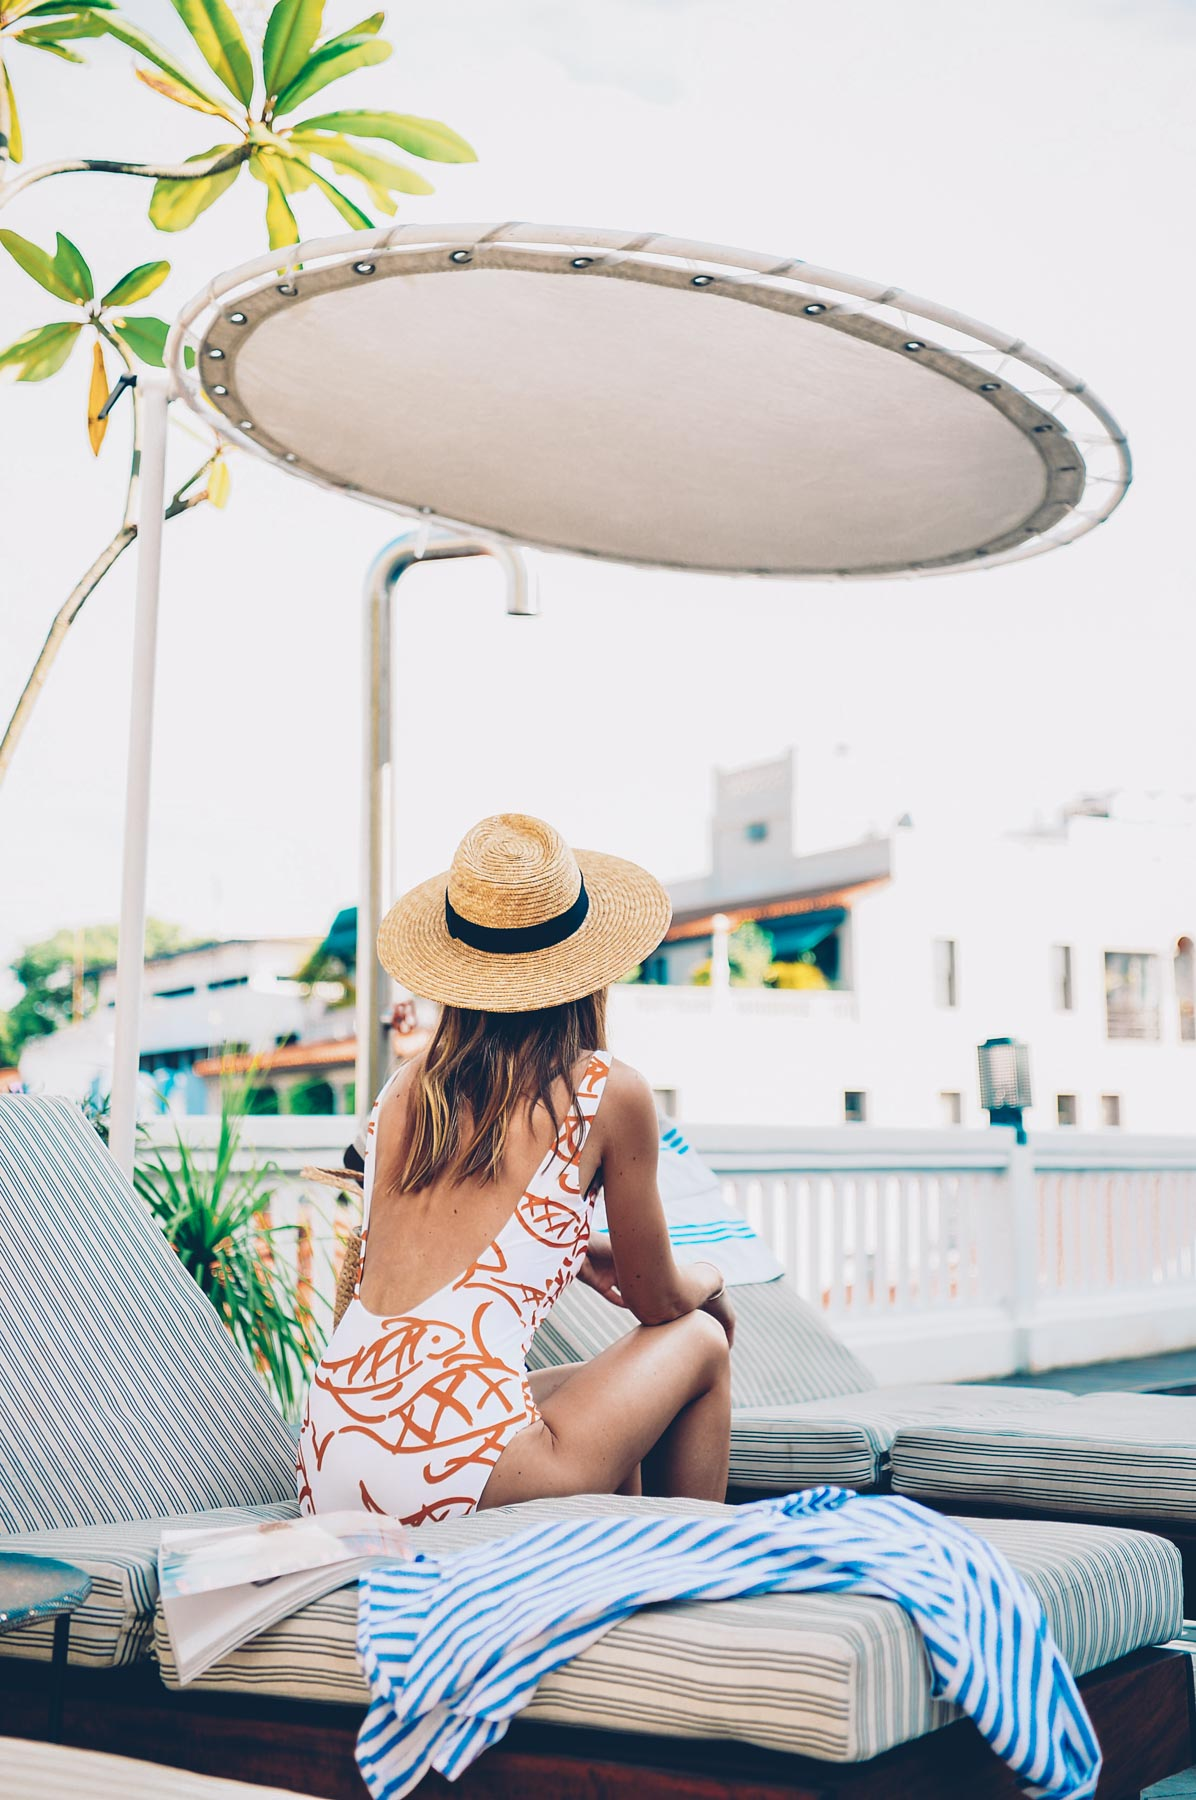 Jess Kirby wearing an Onia One Piece from Anthropologie at the American Trade Hotel in Panama City